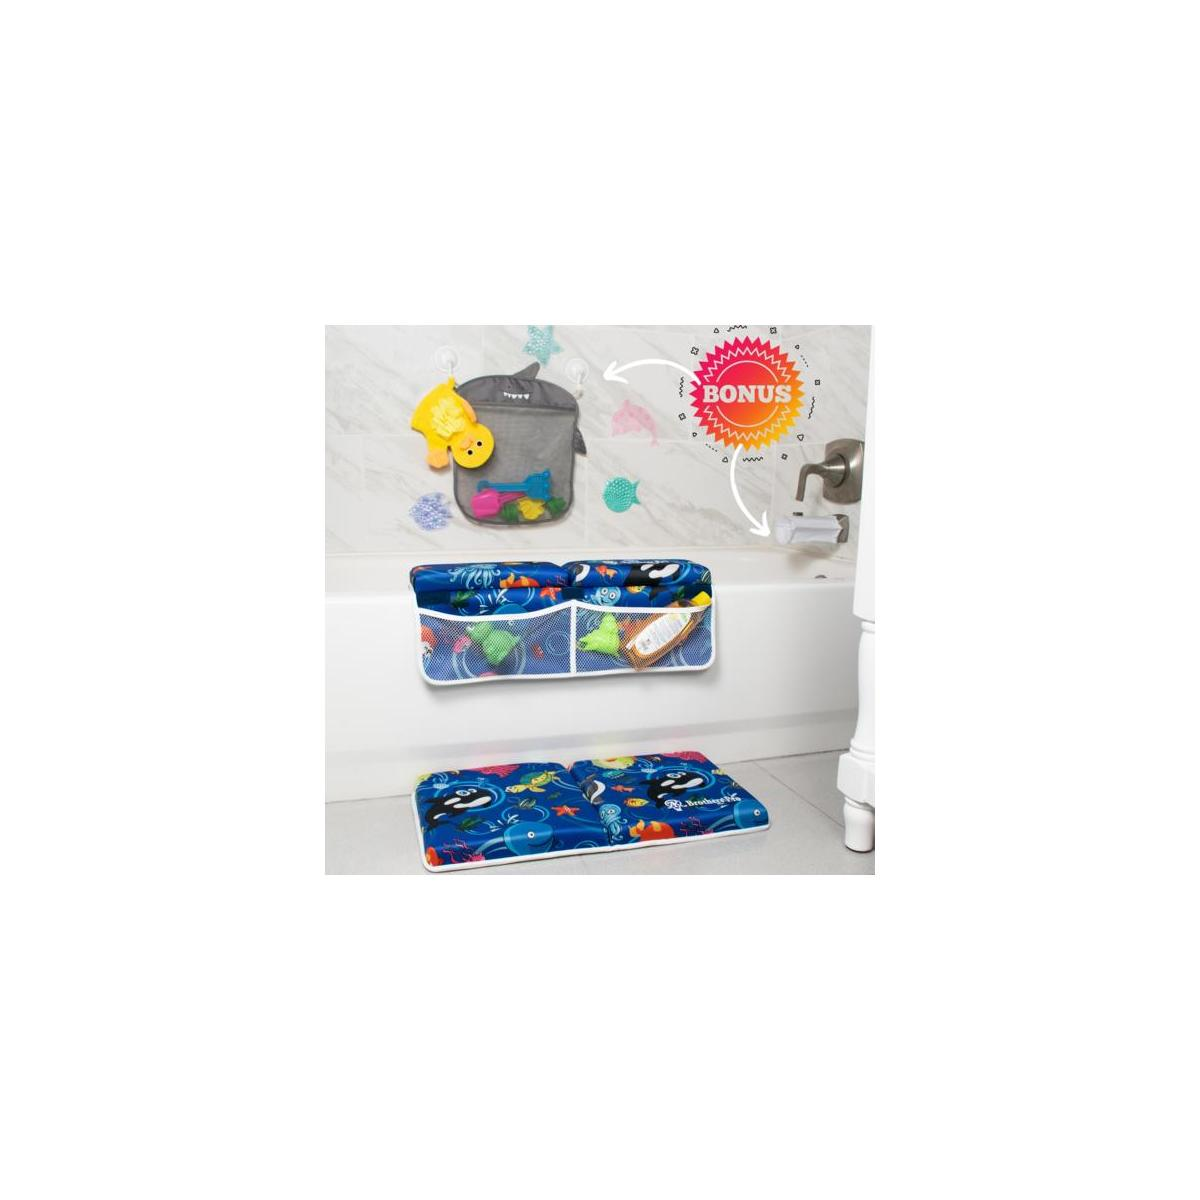 Baby Bath Kneeler & Elbow Rest Set with Free Inflatable Spout Cover, Shark Shaped Mesh Toys Organizer, Decorative Tub Mats, Duck Bath Glove in Tote Bag. Cute baby shower gift for Boys and Girls